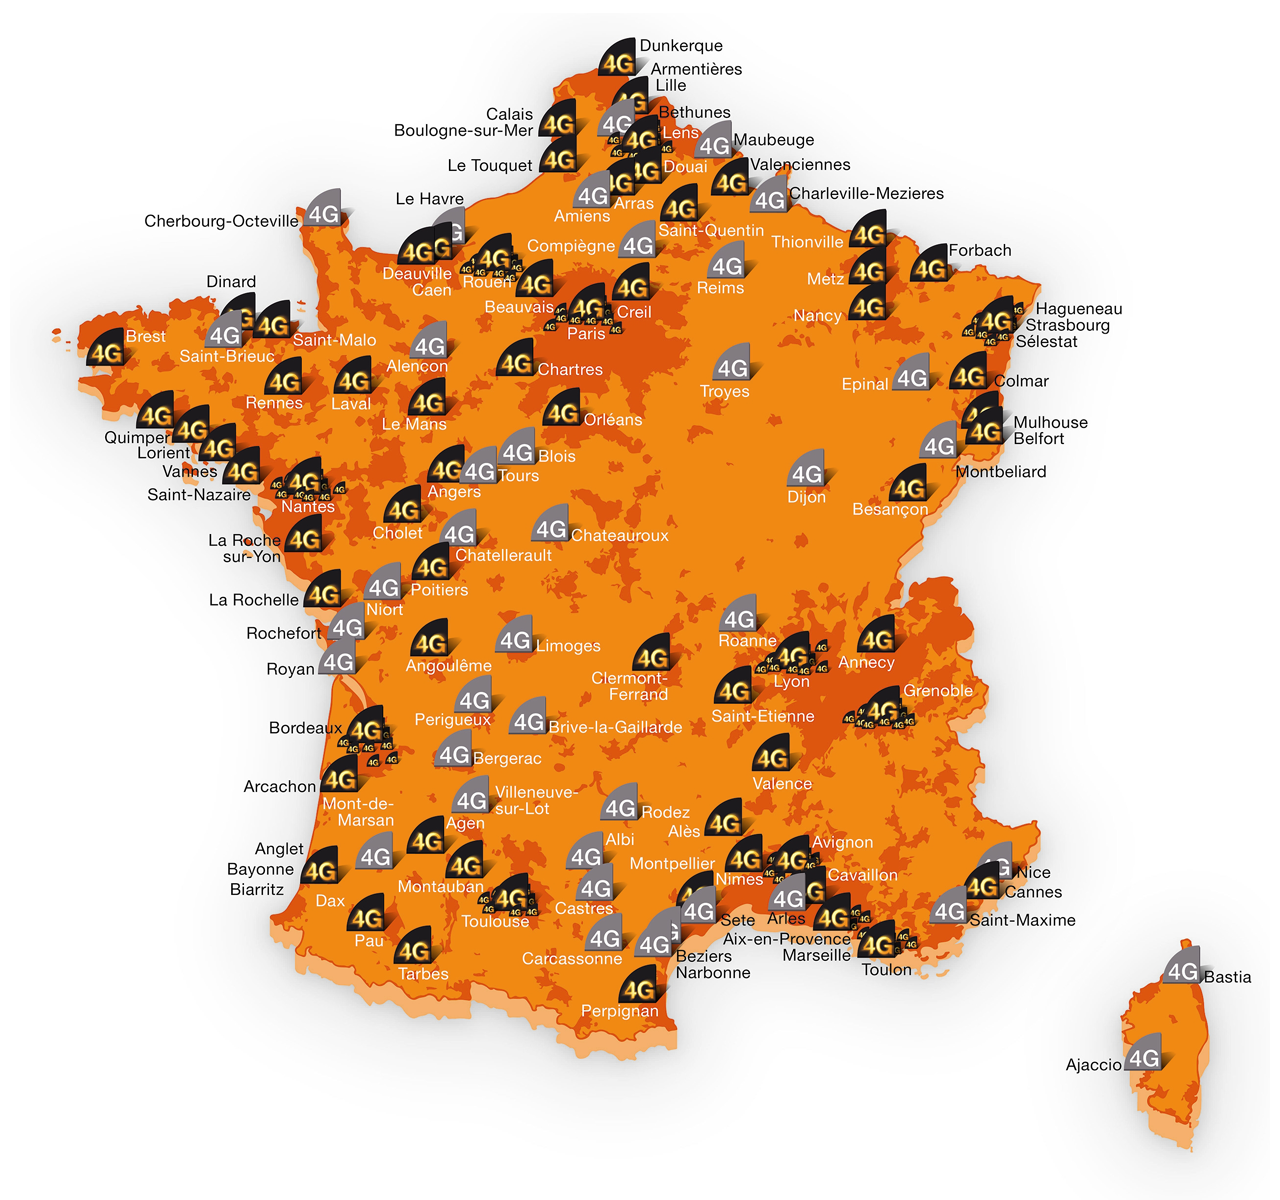 oranges 4g france septembre 2013 - Orange : Paris couvert à 100% par la 4G